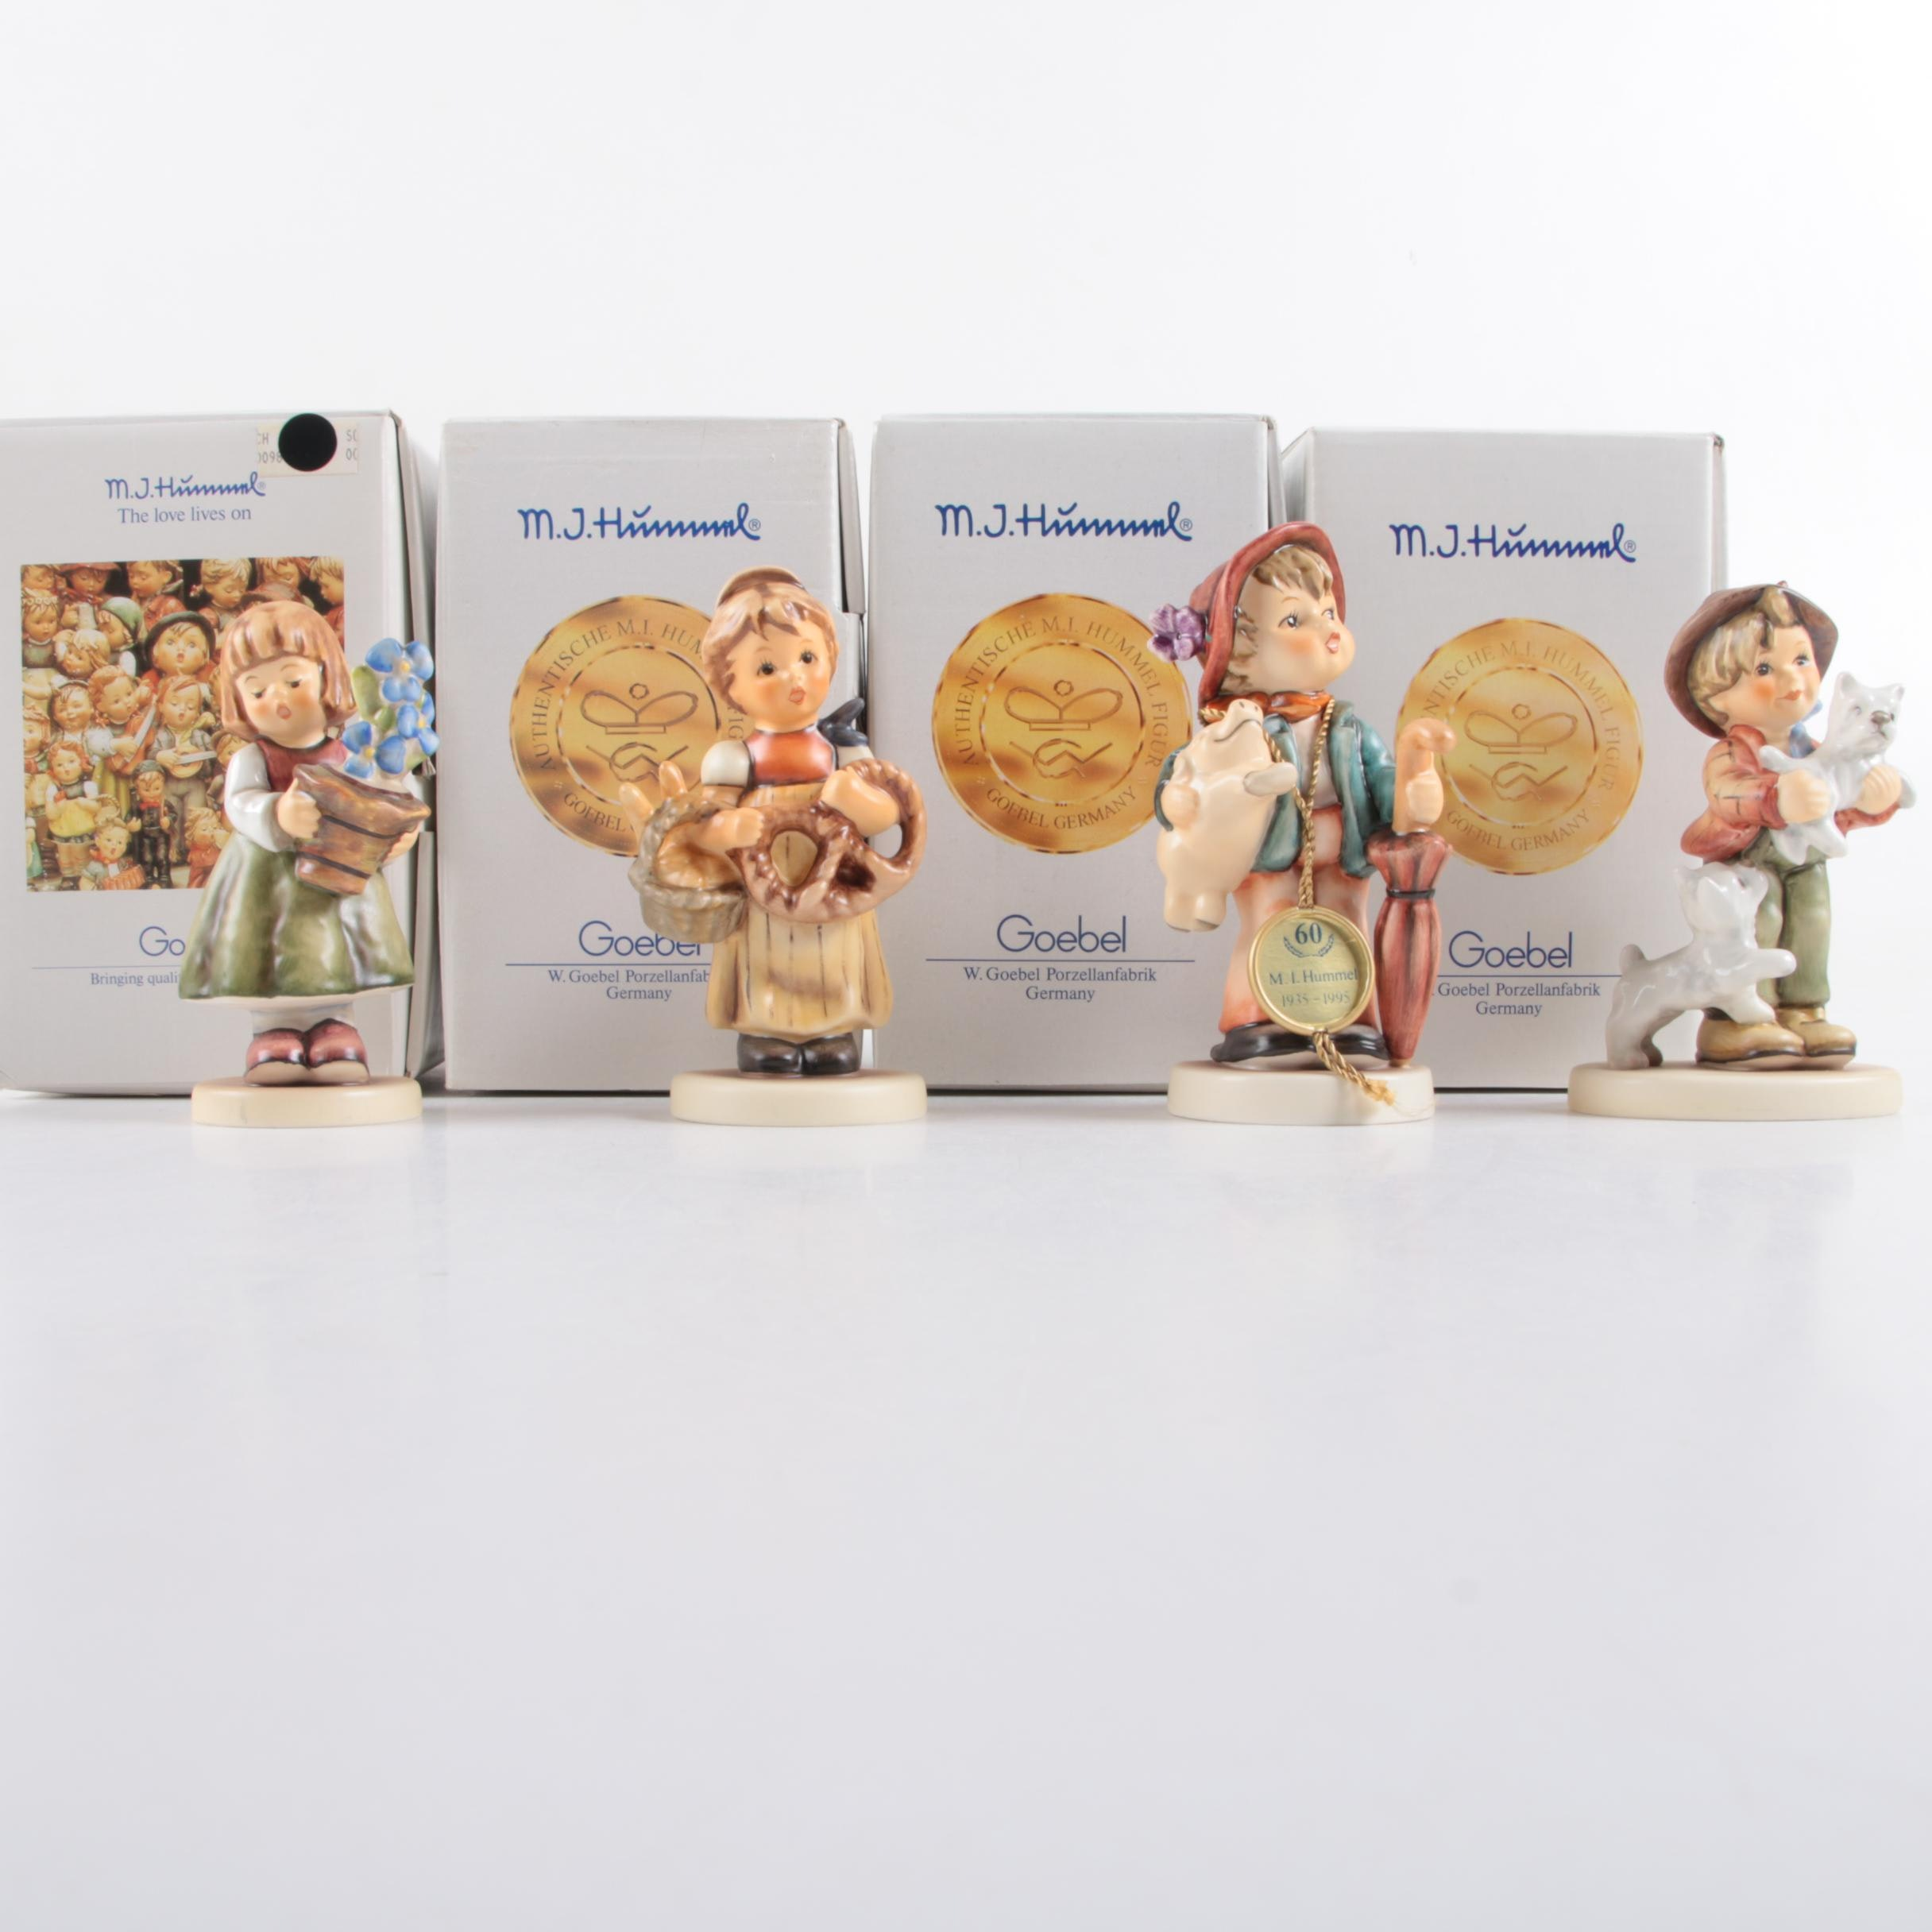 Collection of Limited Edition and First Issue M.I. Hummel Porcelain Figurines